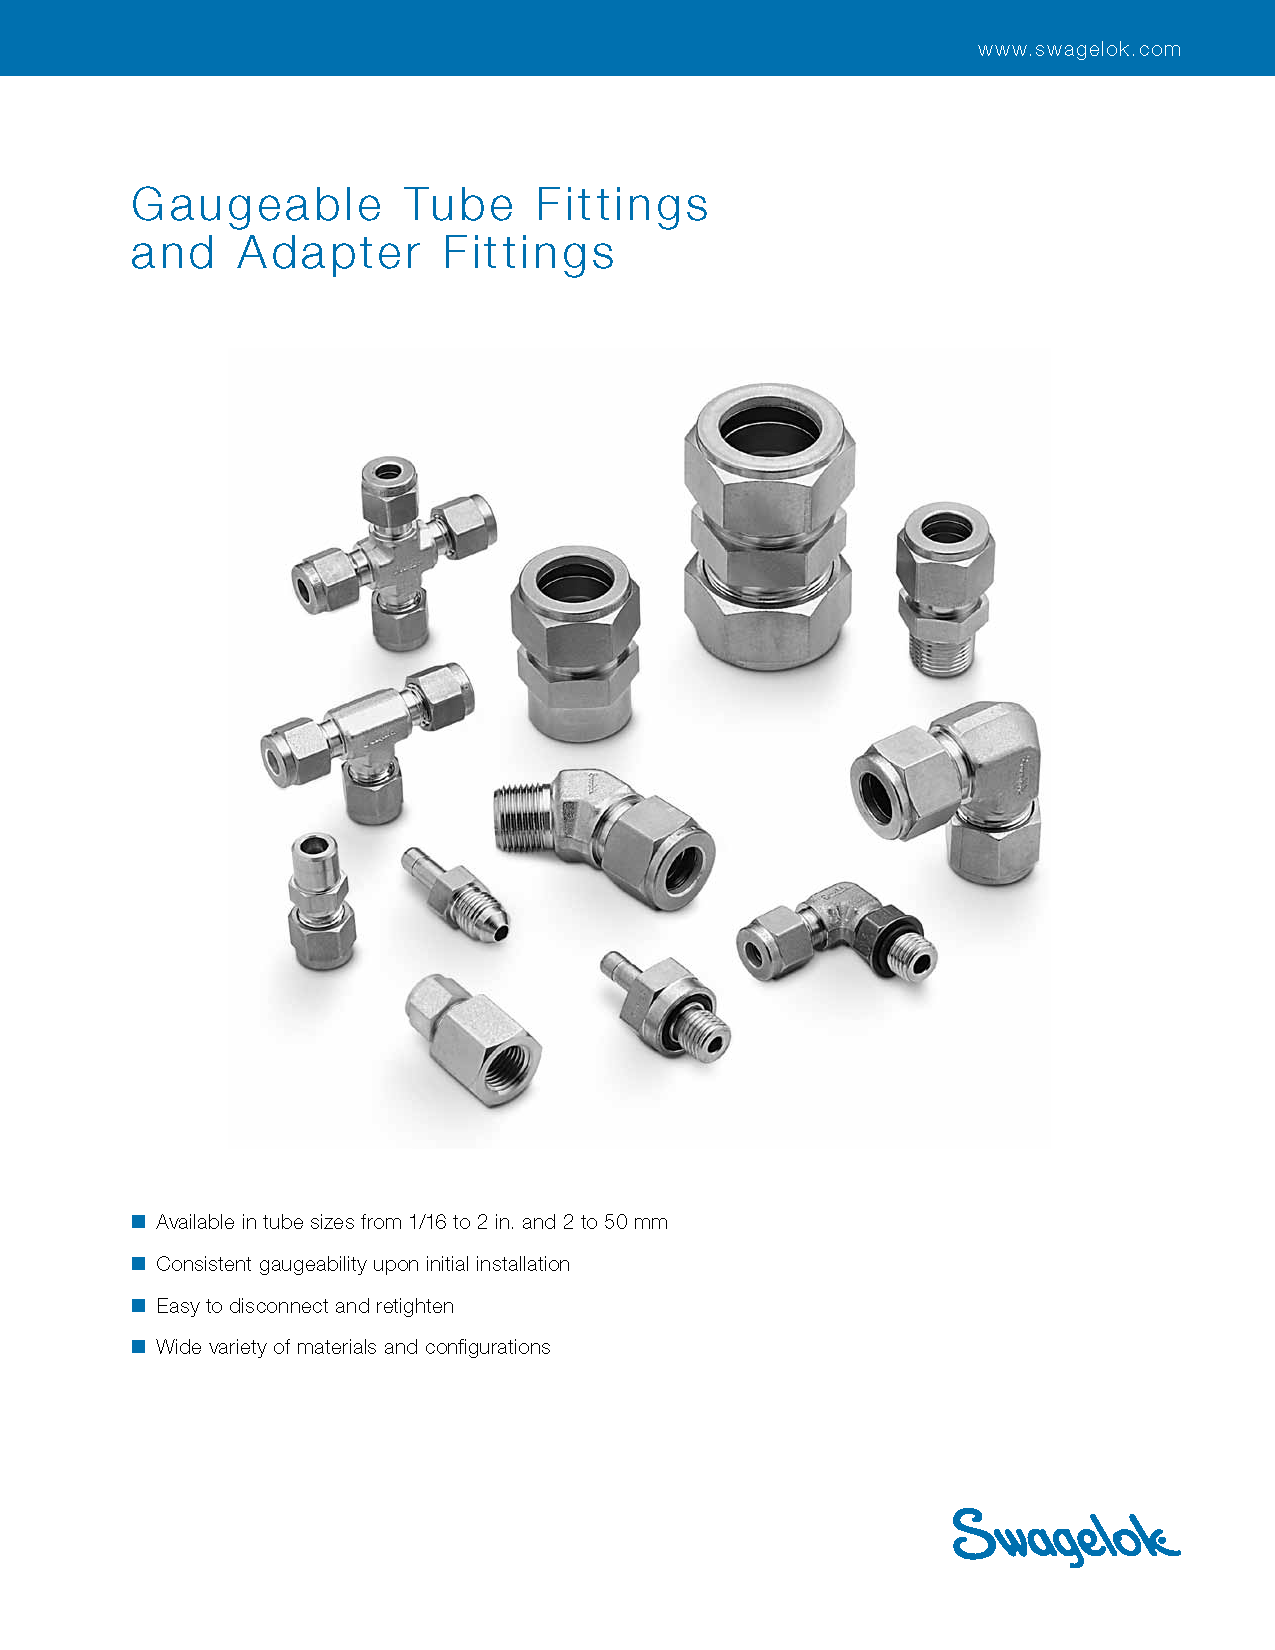 Fill the form to access this catalog